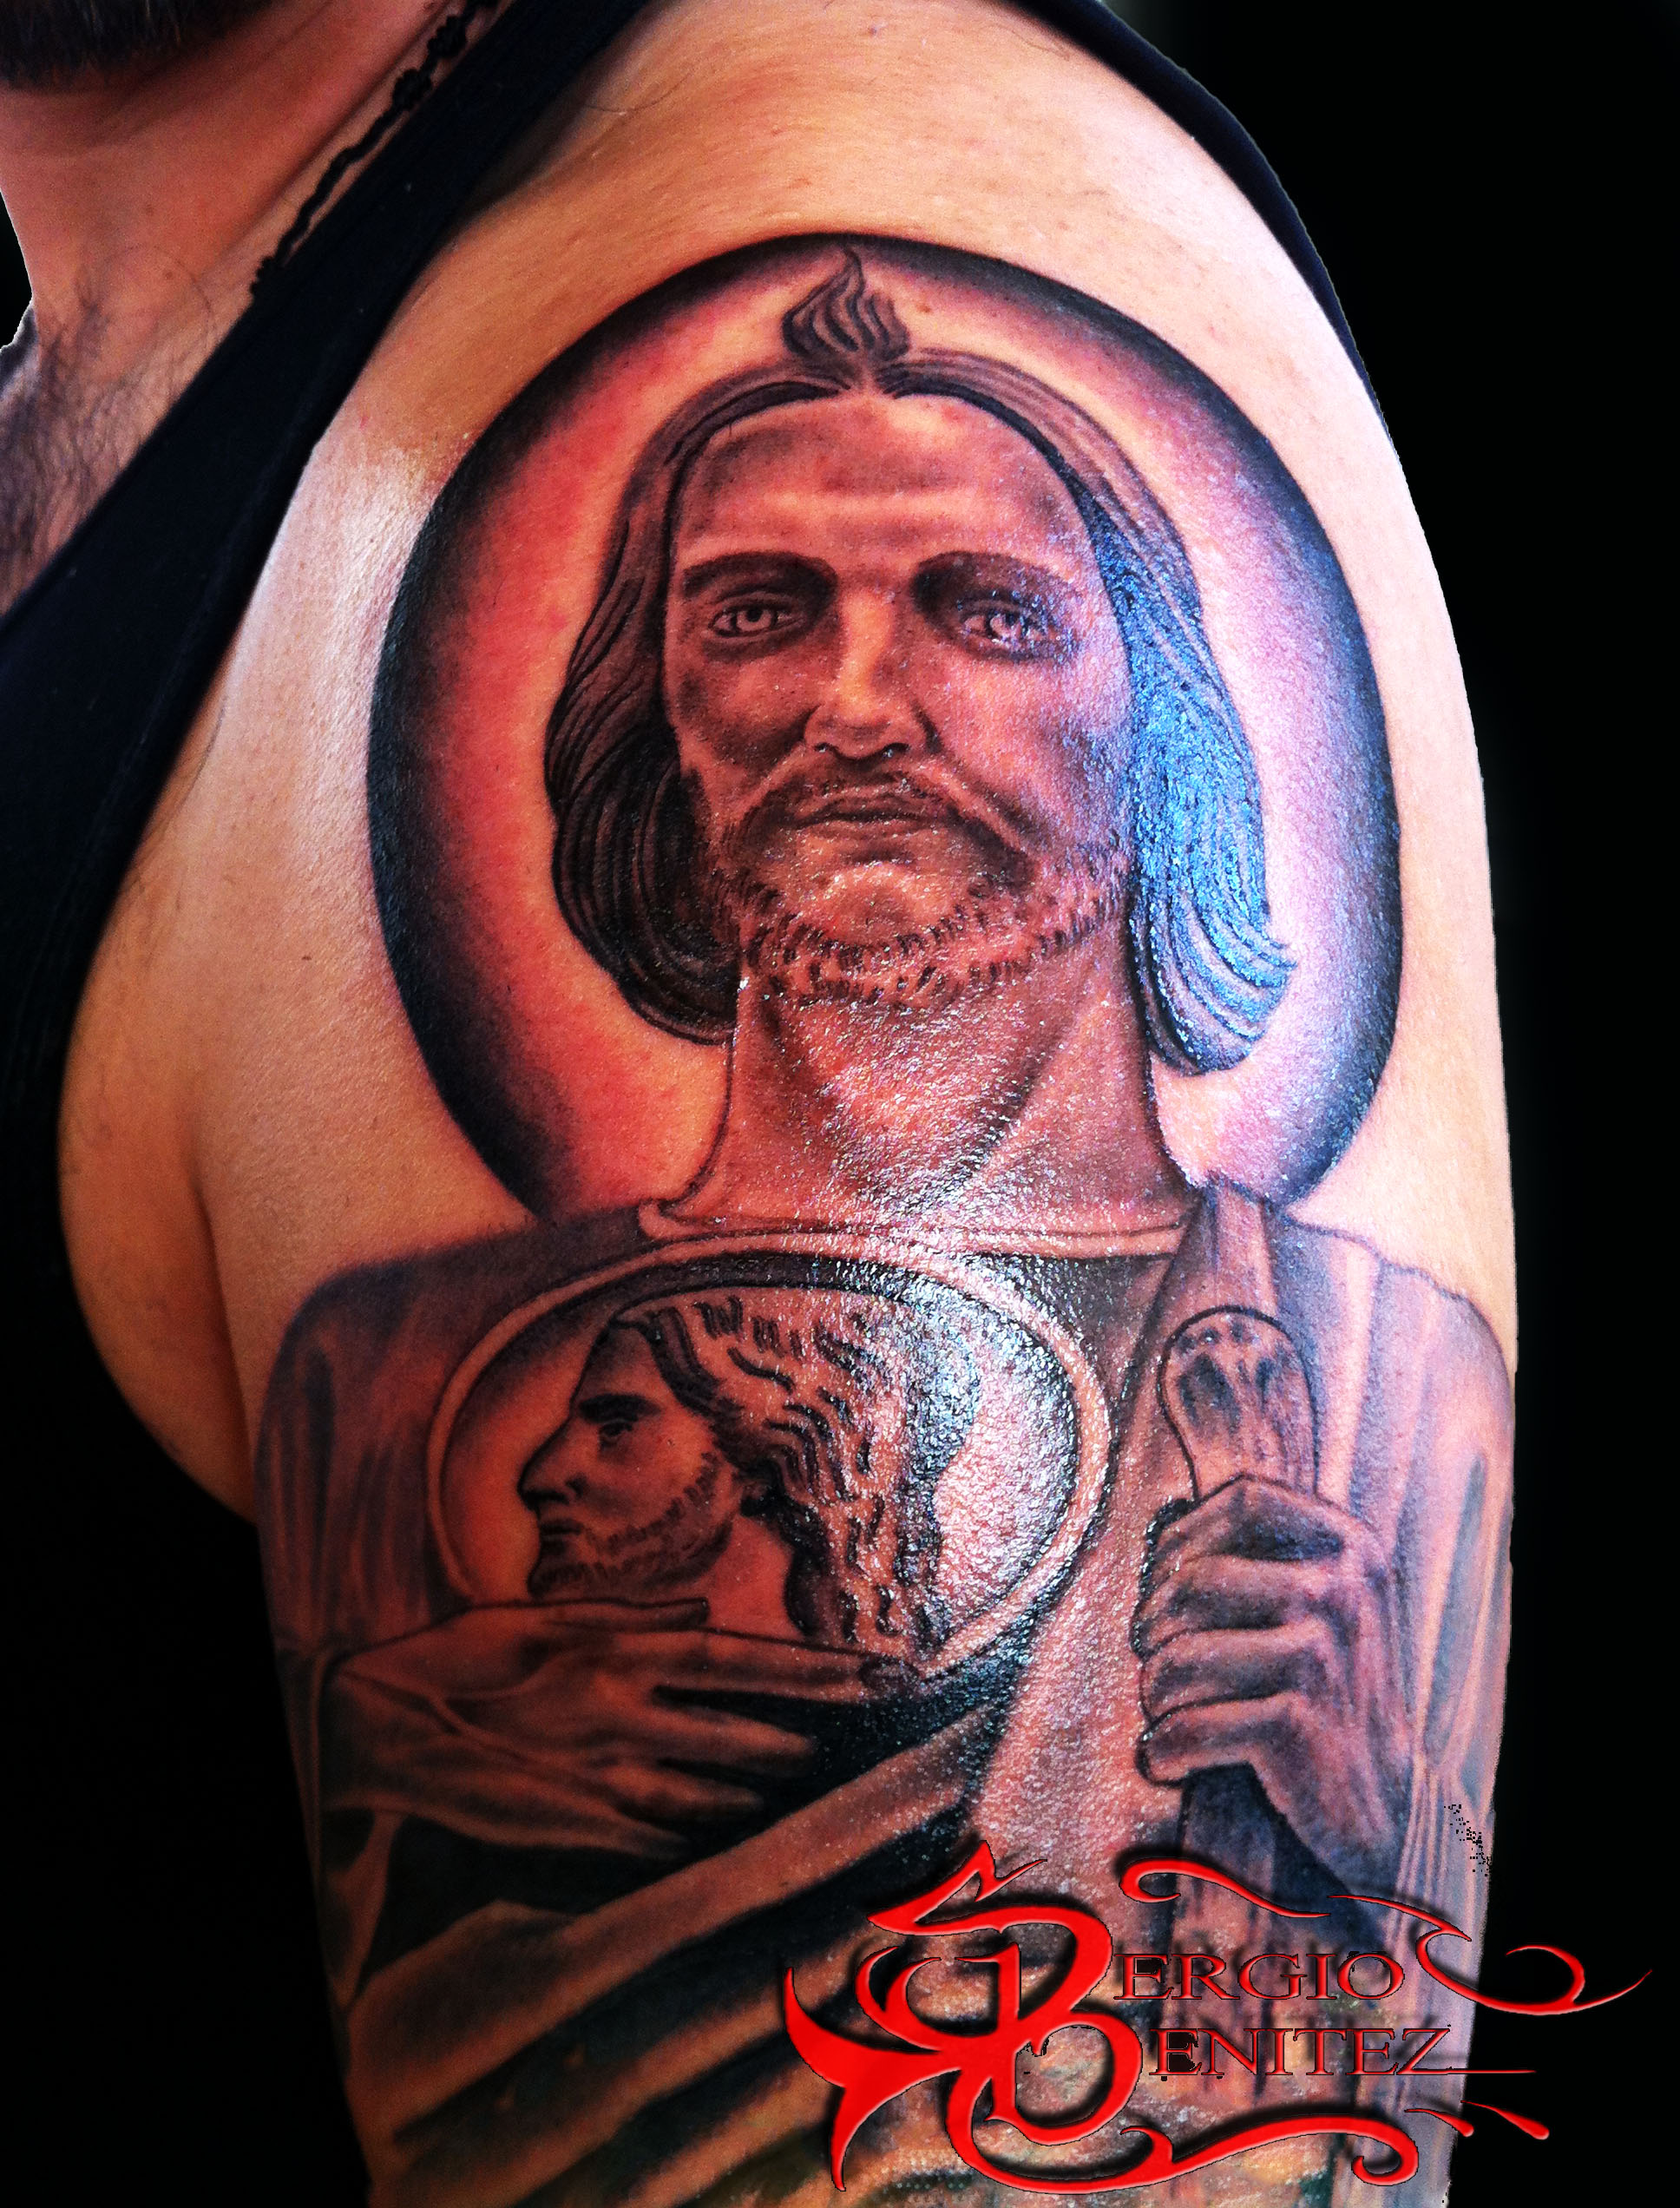 San Judas Tattoo: Certified Artist